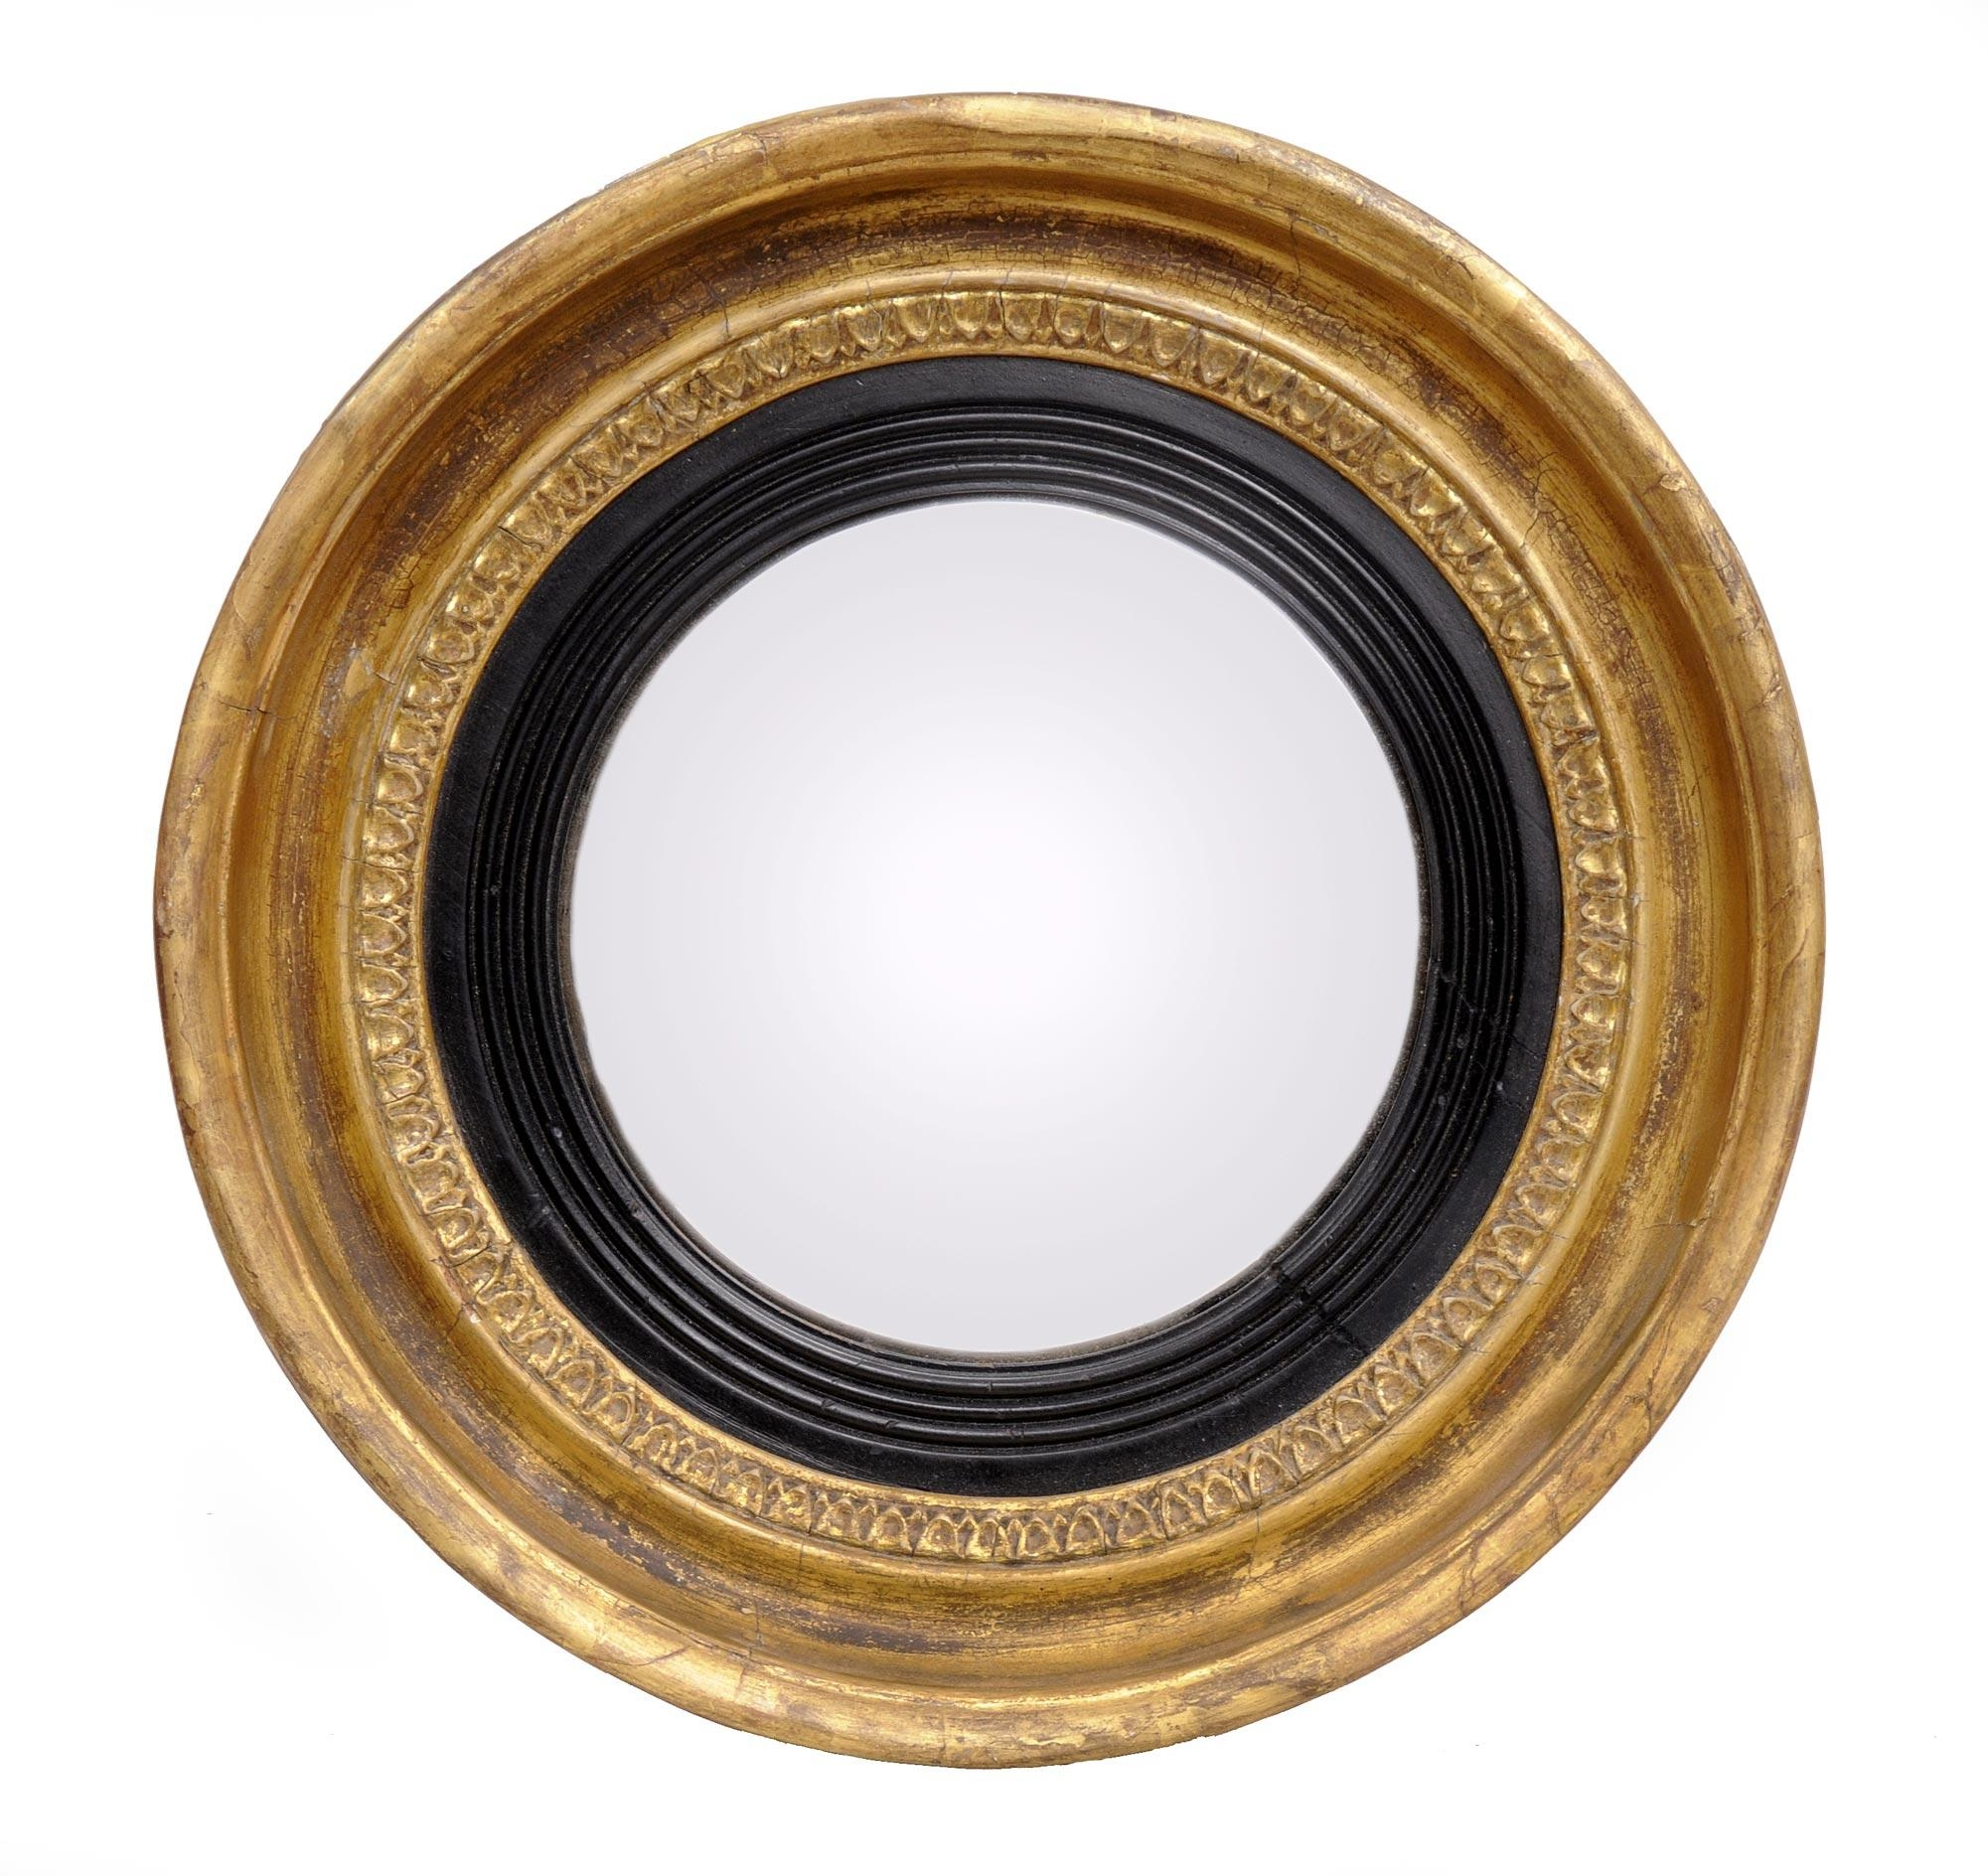 Small Convex Mirror For Creating Striking Wall Decoration | Homesfeed Pertaining To Small Convex Mirrors For Sale (View 4 of 20)